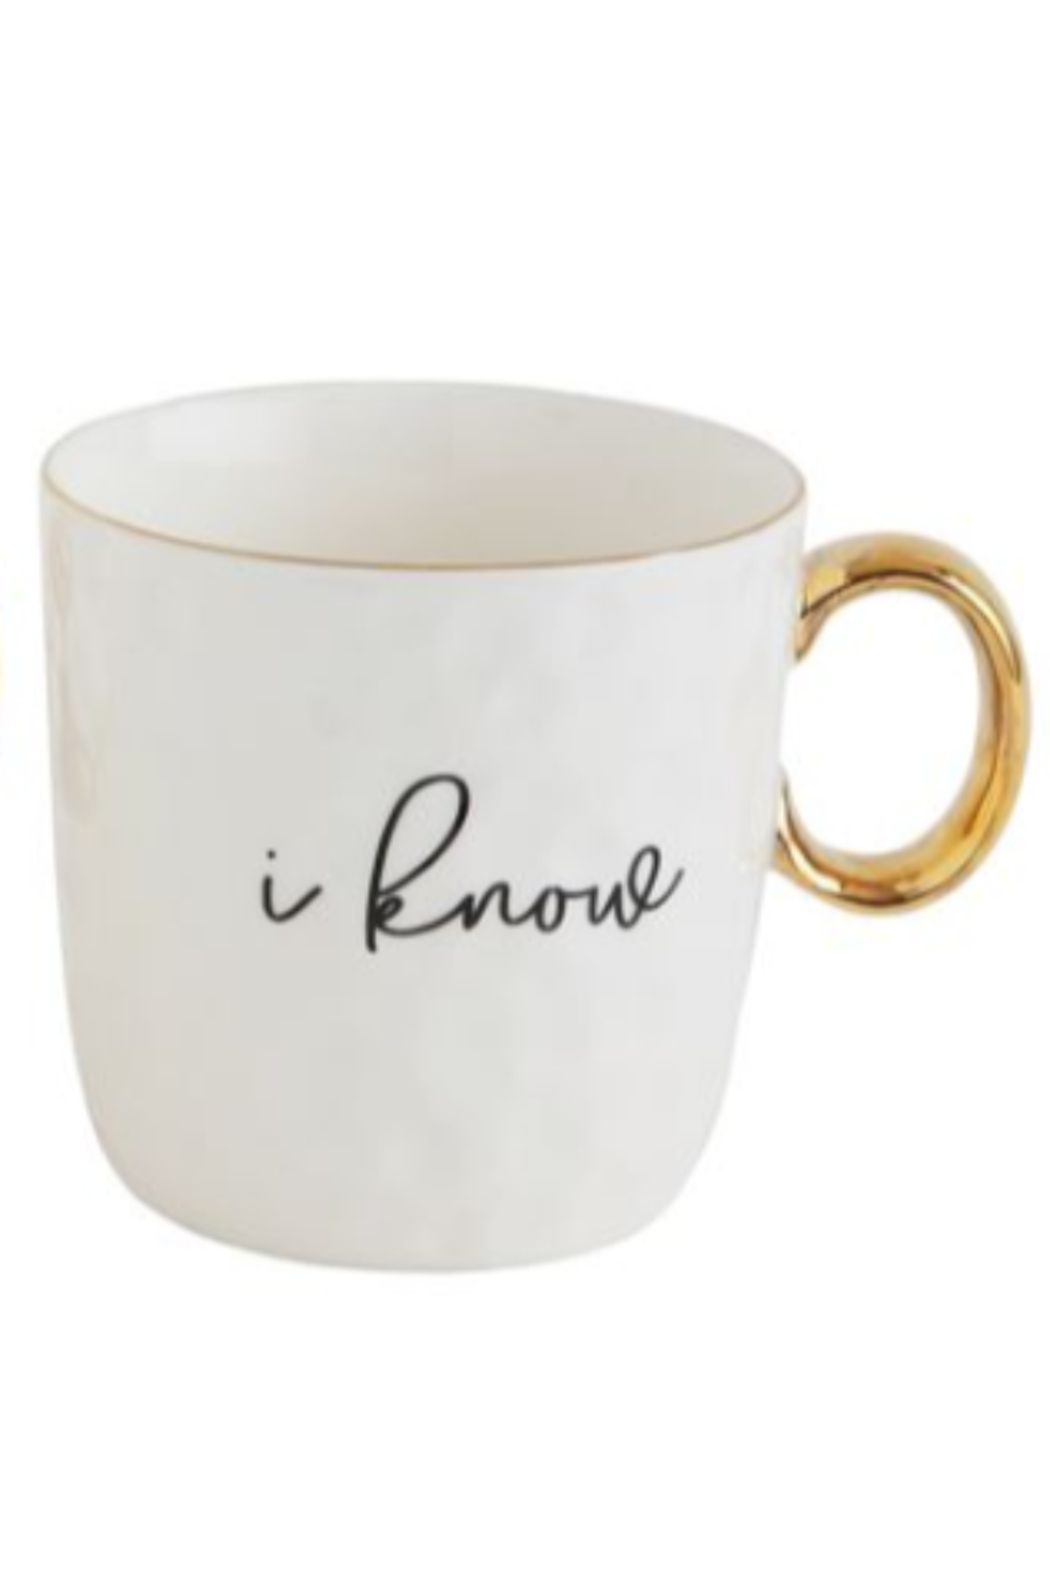 The Birds Nest MUG WITH I LOVE YOU SAYINGS - Front Cropped Image